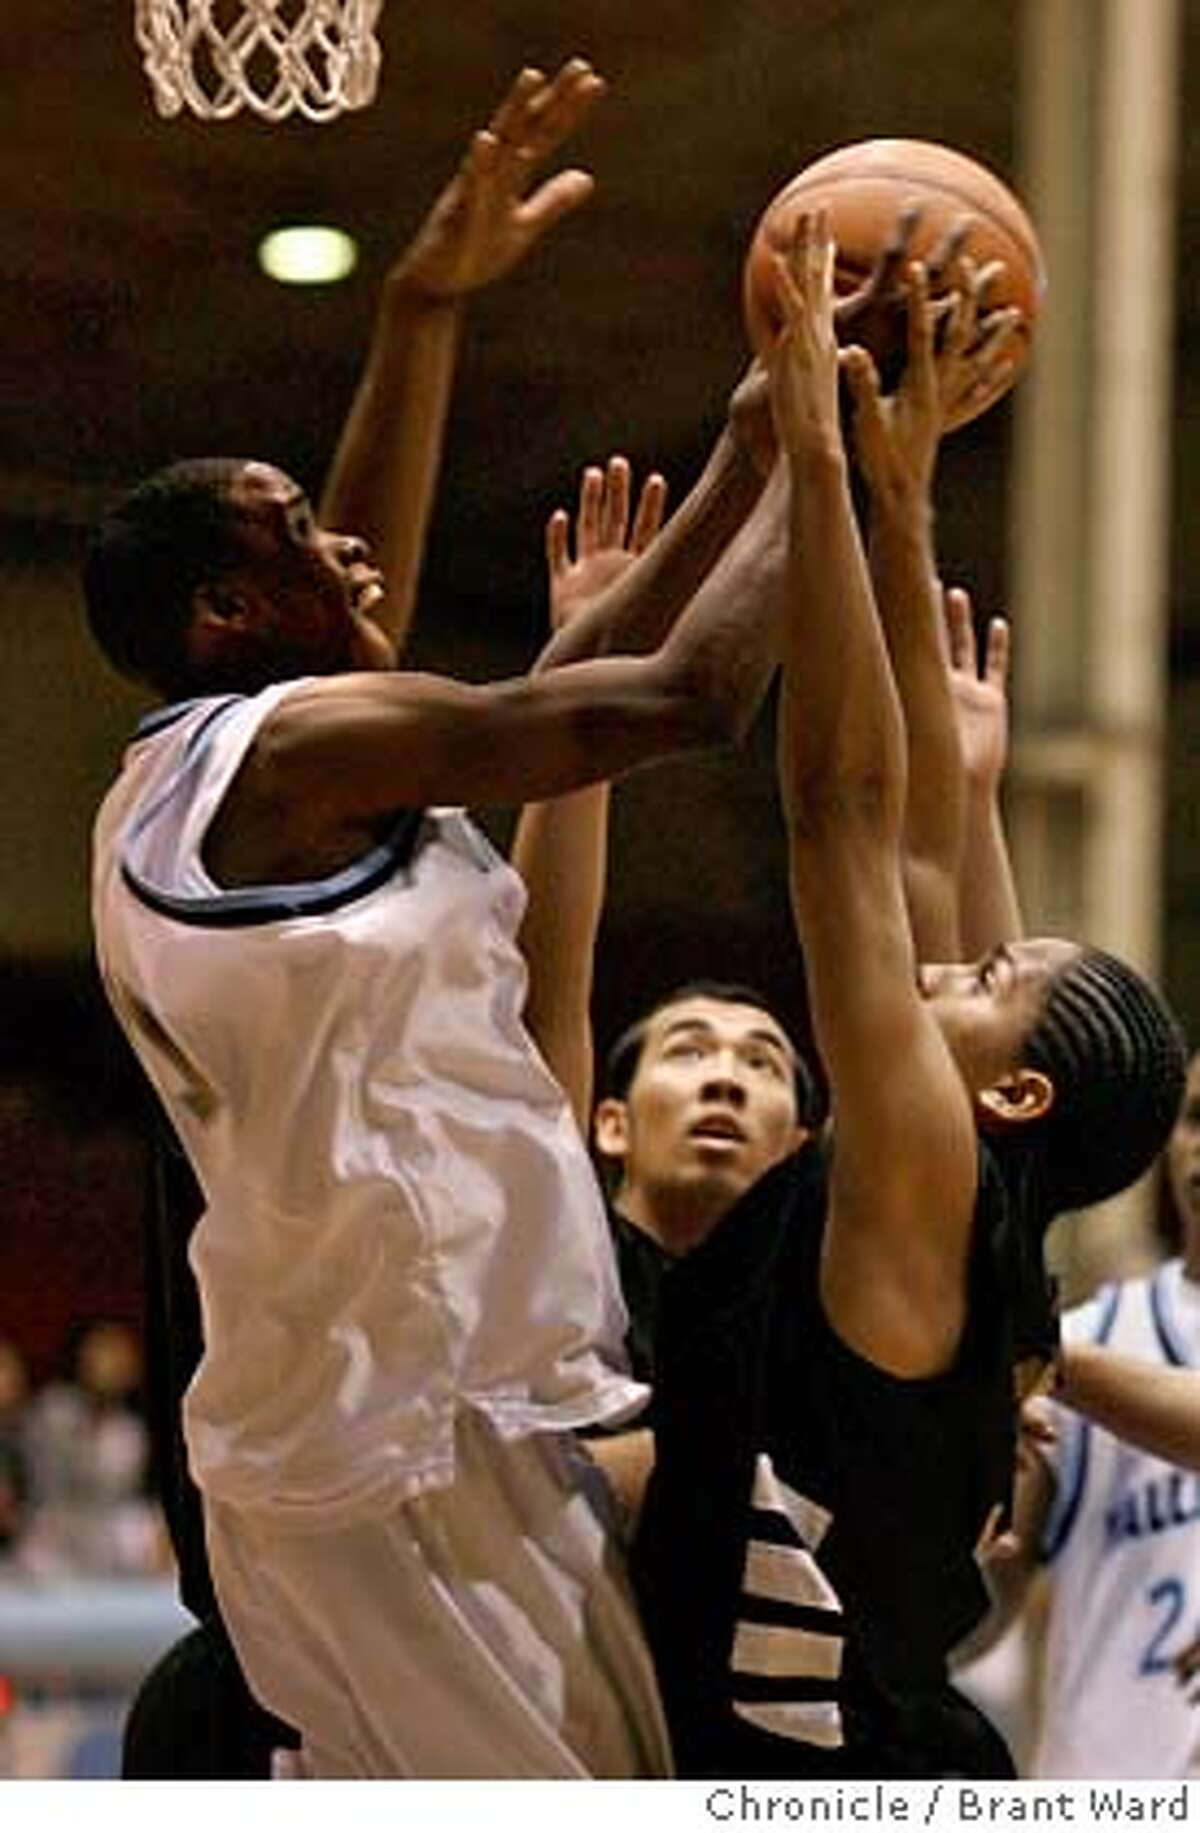 aaa055_ward.jpg Wallenberg's Rodney Freeman, left, battled with ISA's Victor Zacca, right, for a rebound in first half action. Boys basketball action at Kezar Pavillion. Wallenberg High School, in white, against International Studies Academy (ISA), in black jerseys. Brant Ward2/22/06